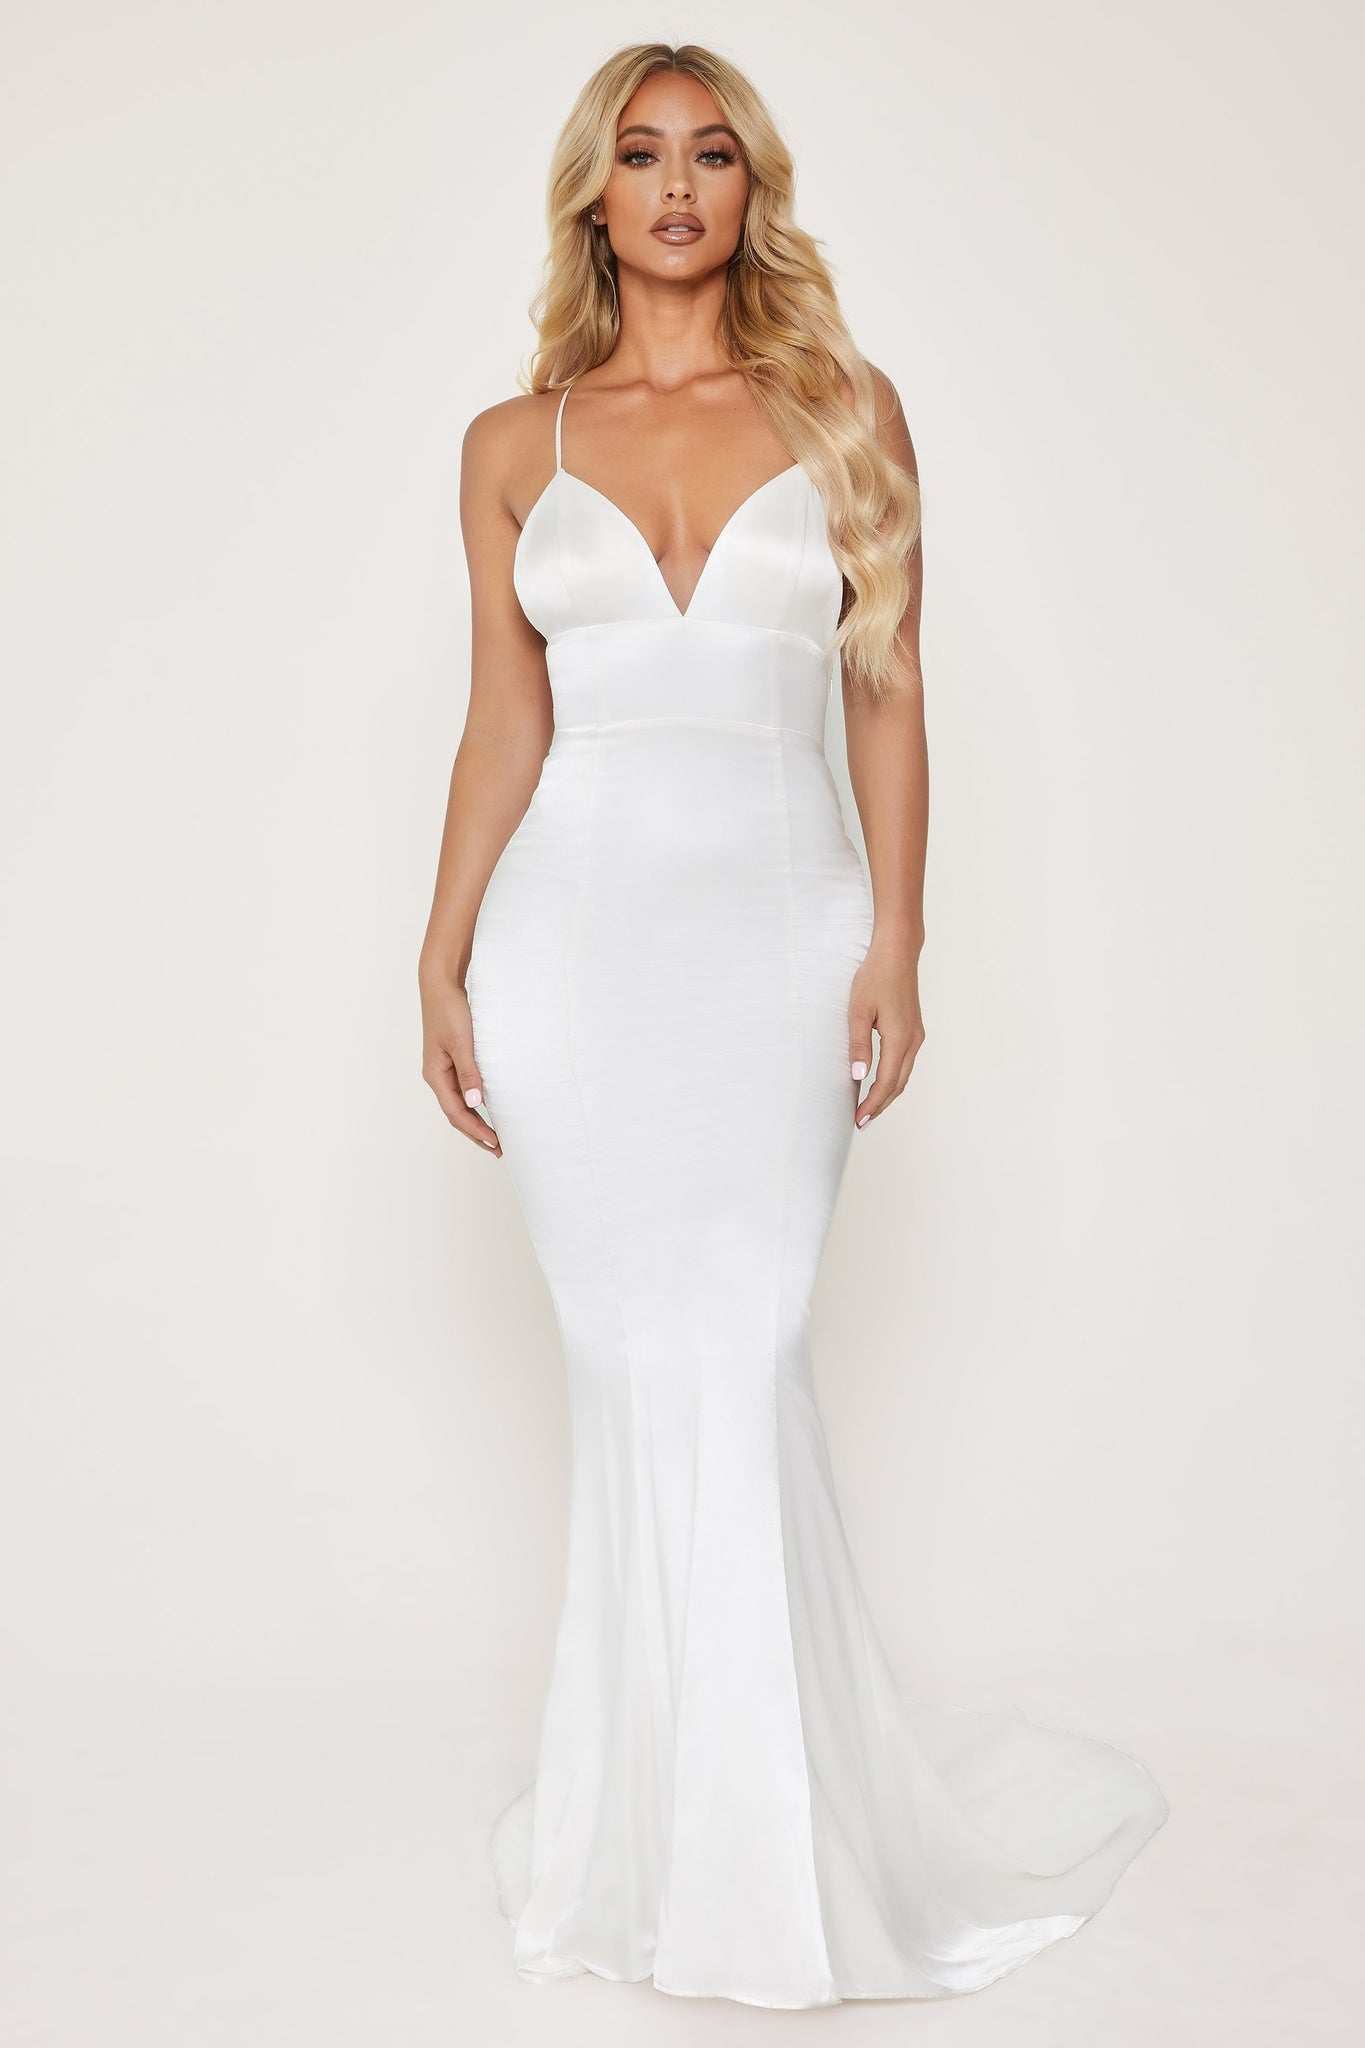 Shellin Low Back Wedding Dress - White - MESHKI